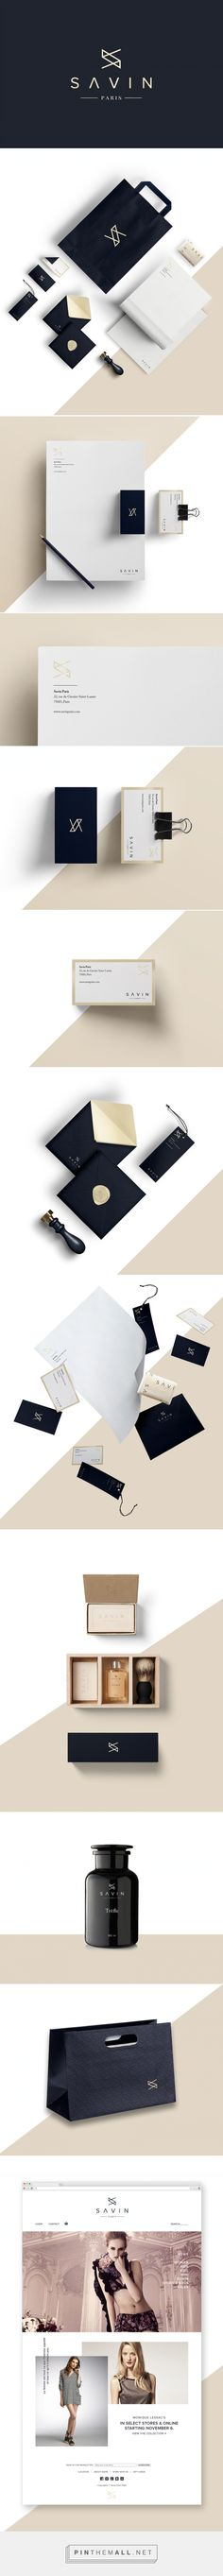 Savin Paris - fashion apparel on Behance - branding stationary corporate…